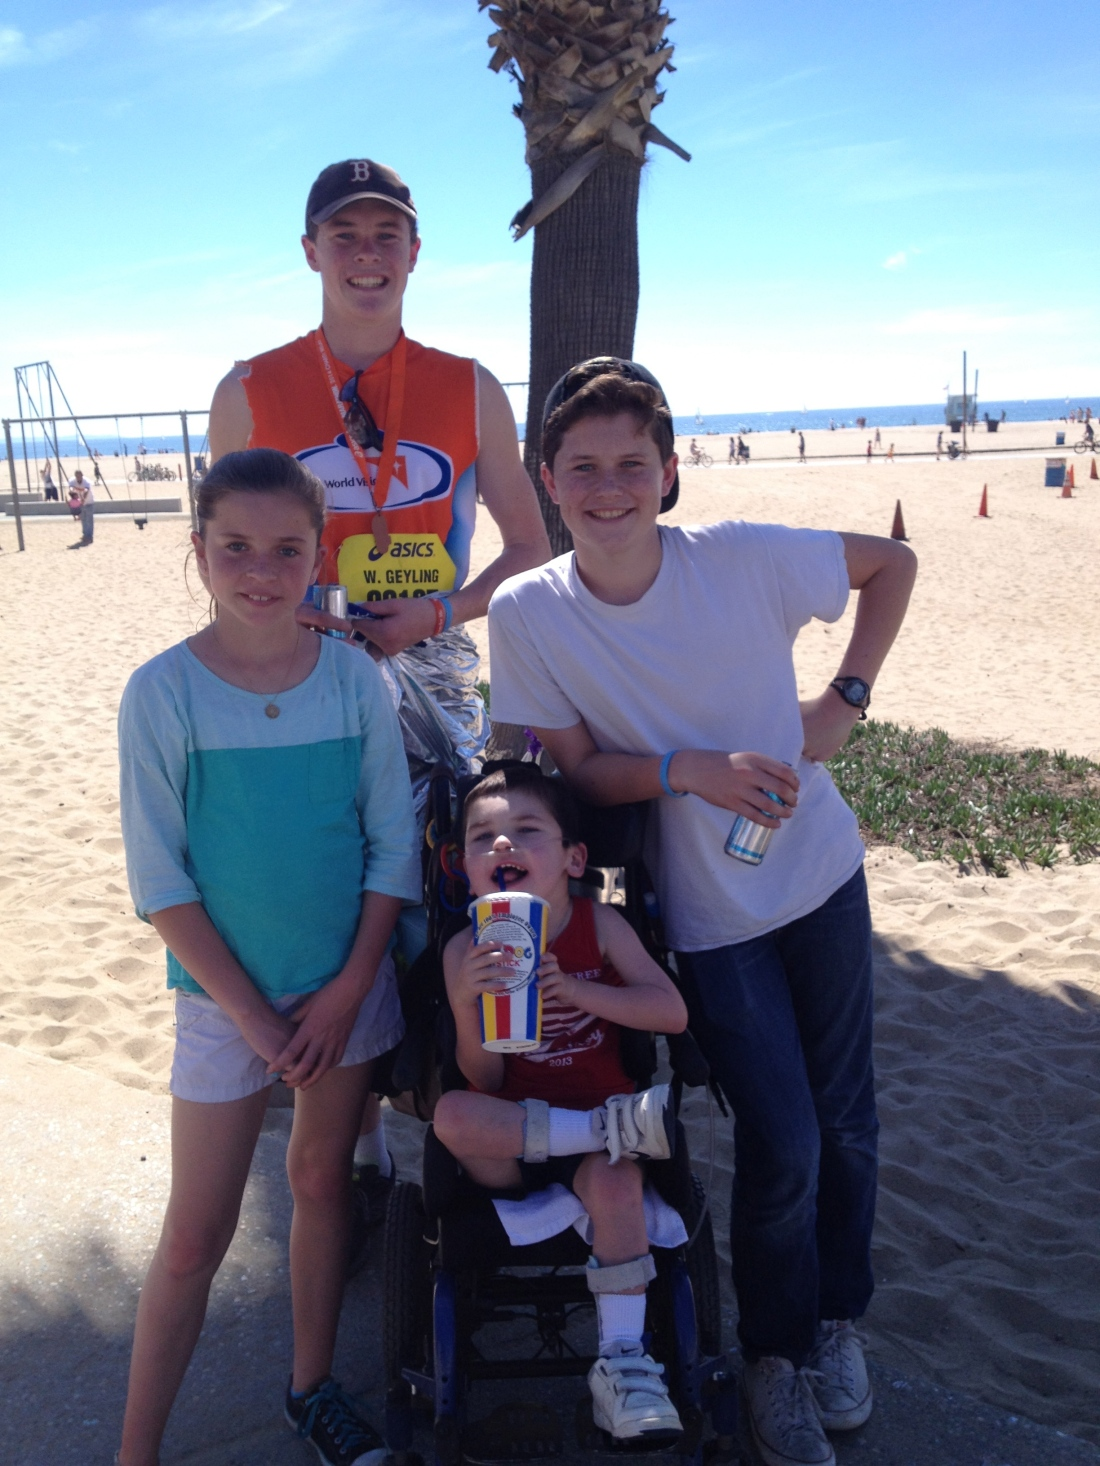 Wilson's 1st 1/2 marathon was a success...the younger sibs were great cheerleaders!